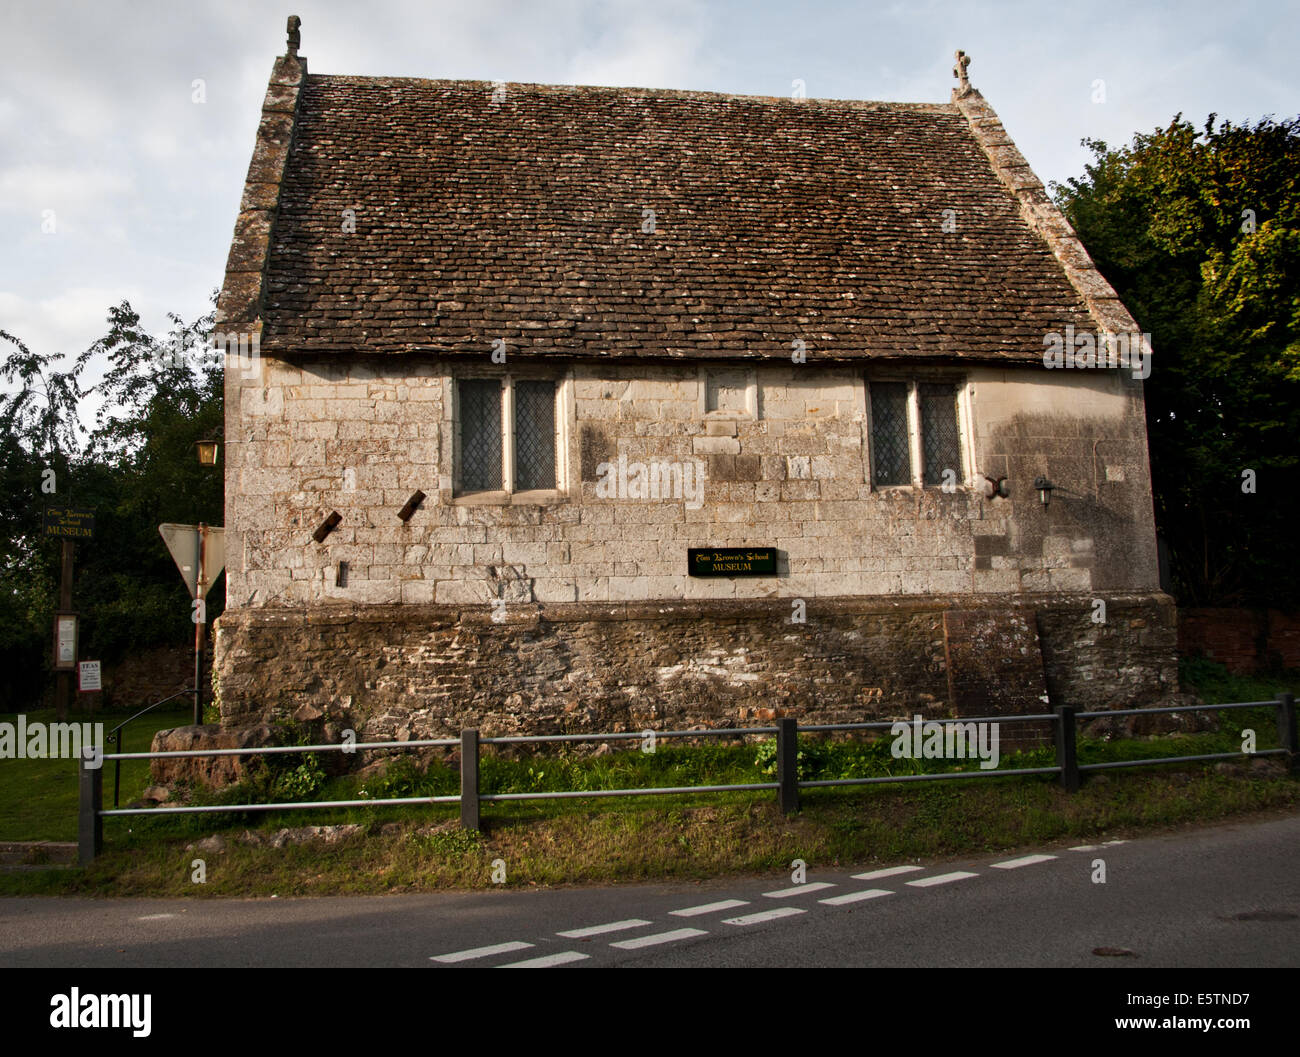 The village school attended by Thomas Hughes, author of 'Tom Brown's School Days', Uffington, Oxfordshire, UK Stock Photo